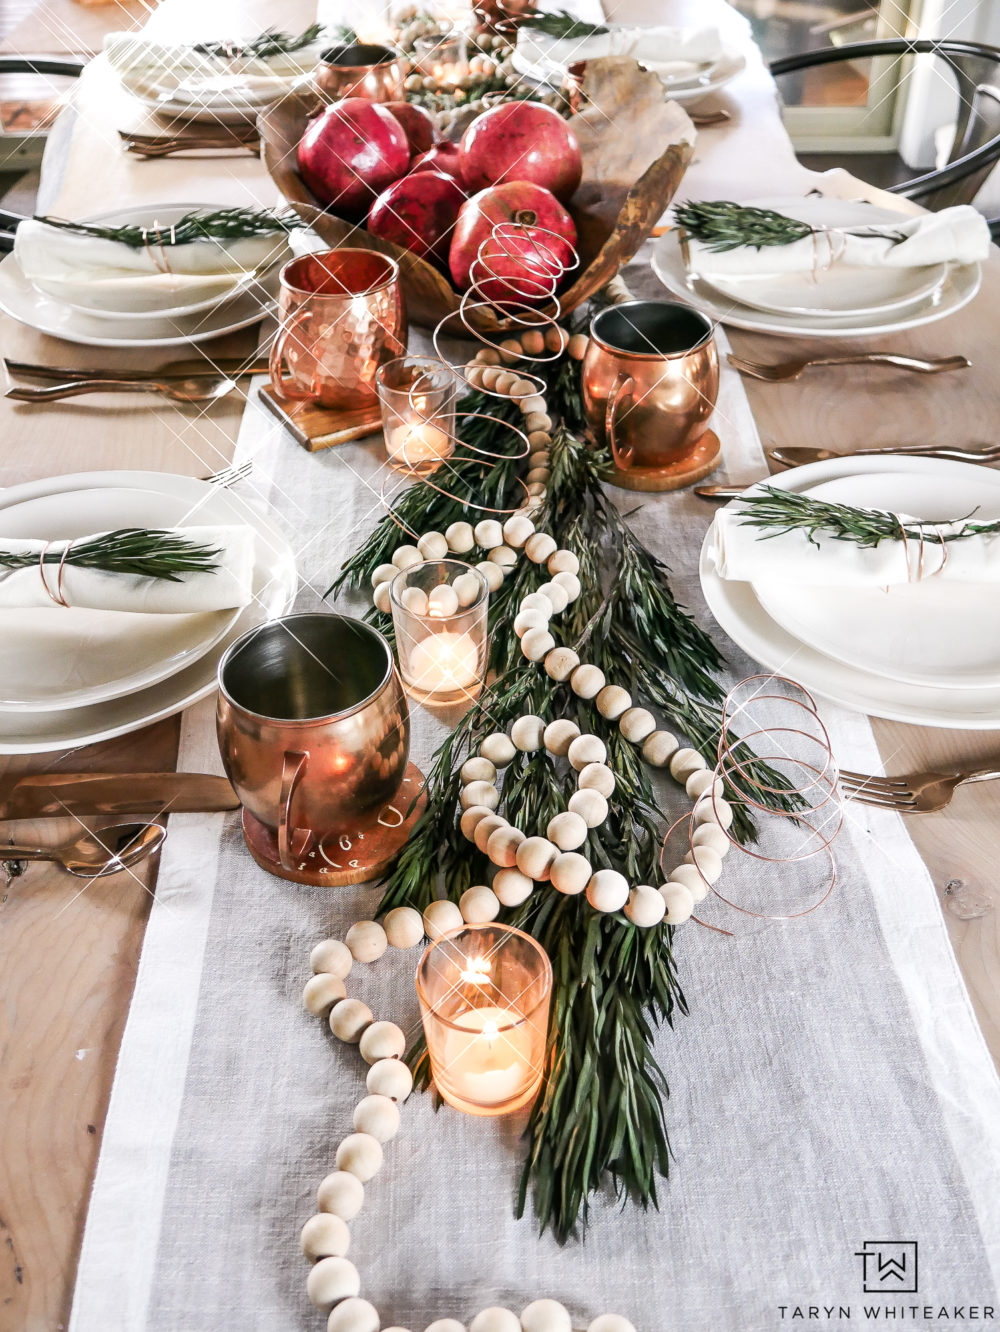 Neutral and elegant Holiday Table Decor using natural elements and creamy whites. Love the mixture of the red pomegranates and greenery.